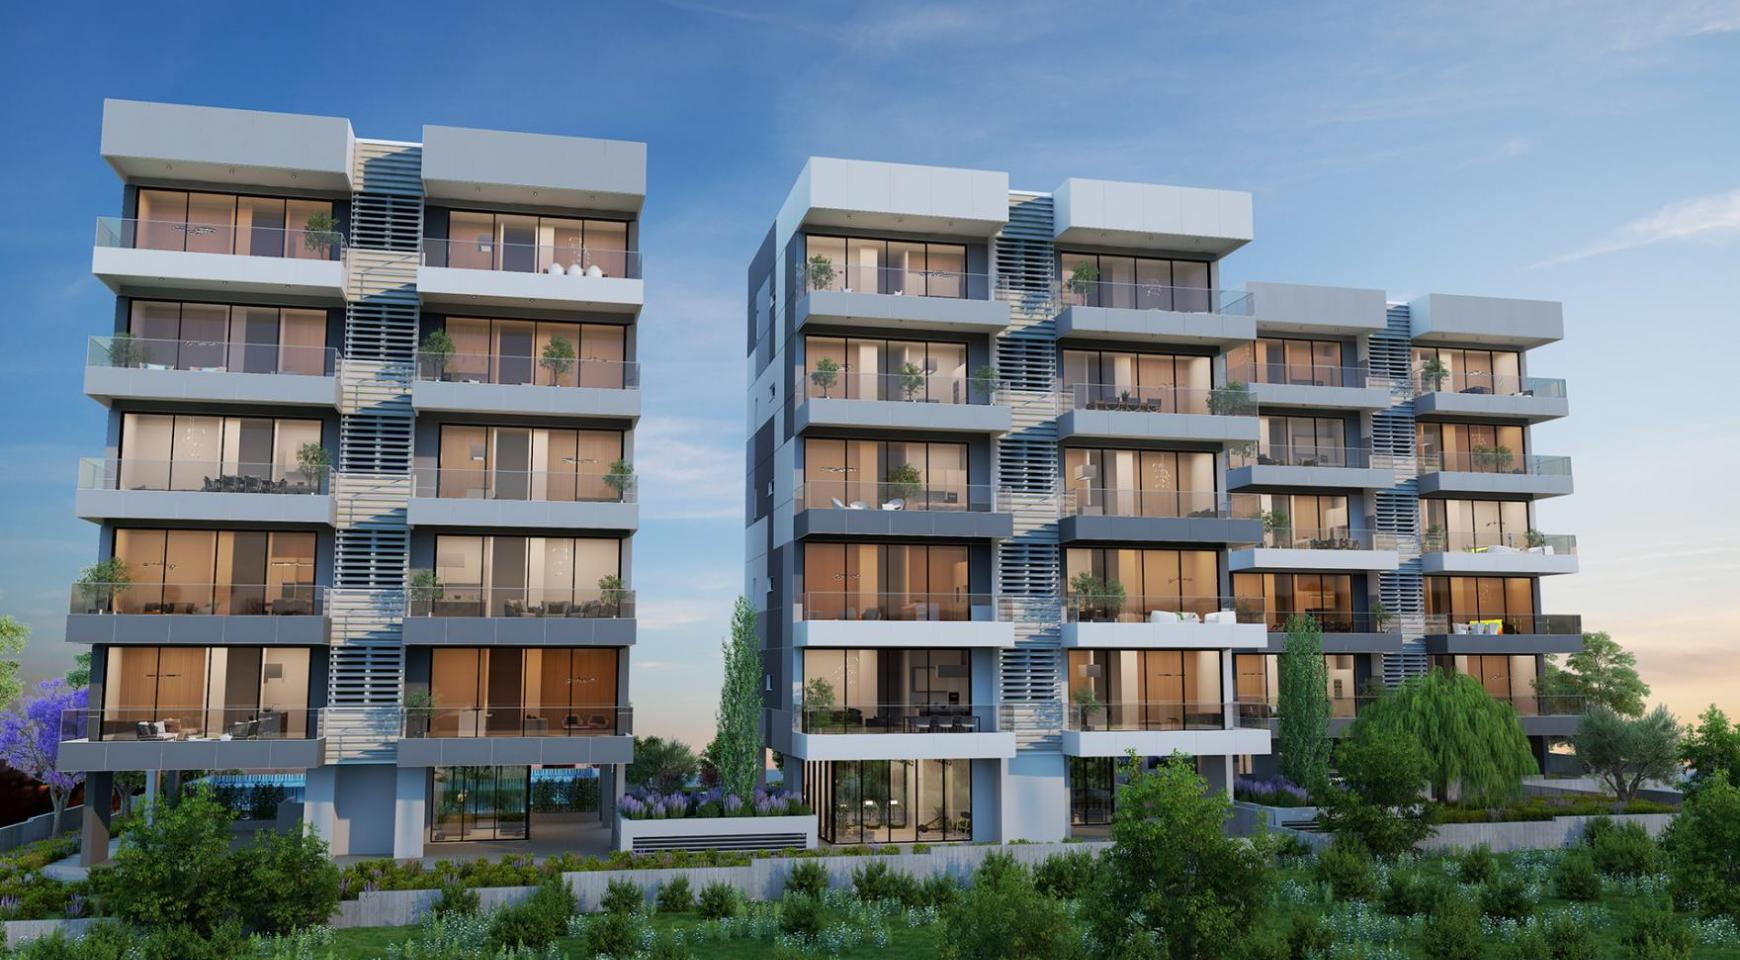 Urban City Residences, Block B. New Spacious 2 Bedroom Apartment 202 in the City Centre - 22